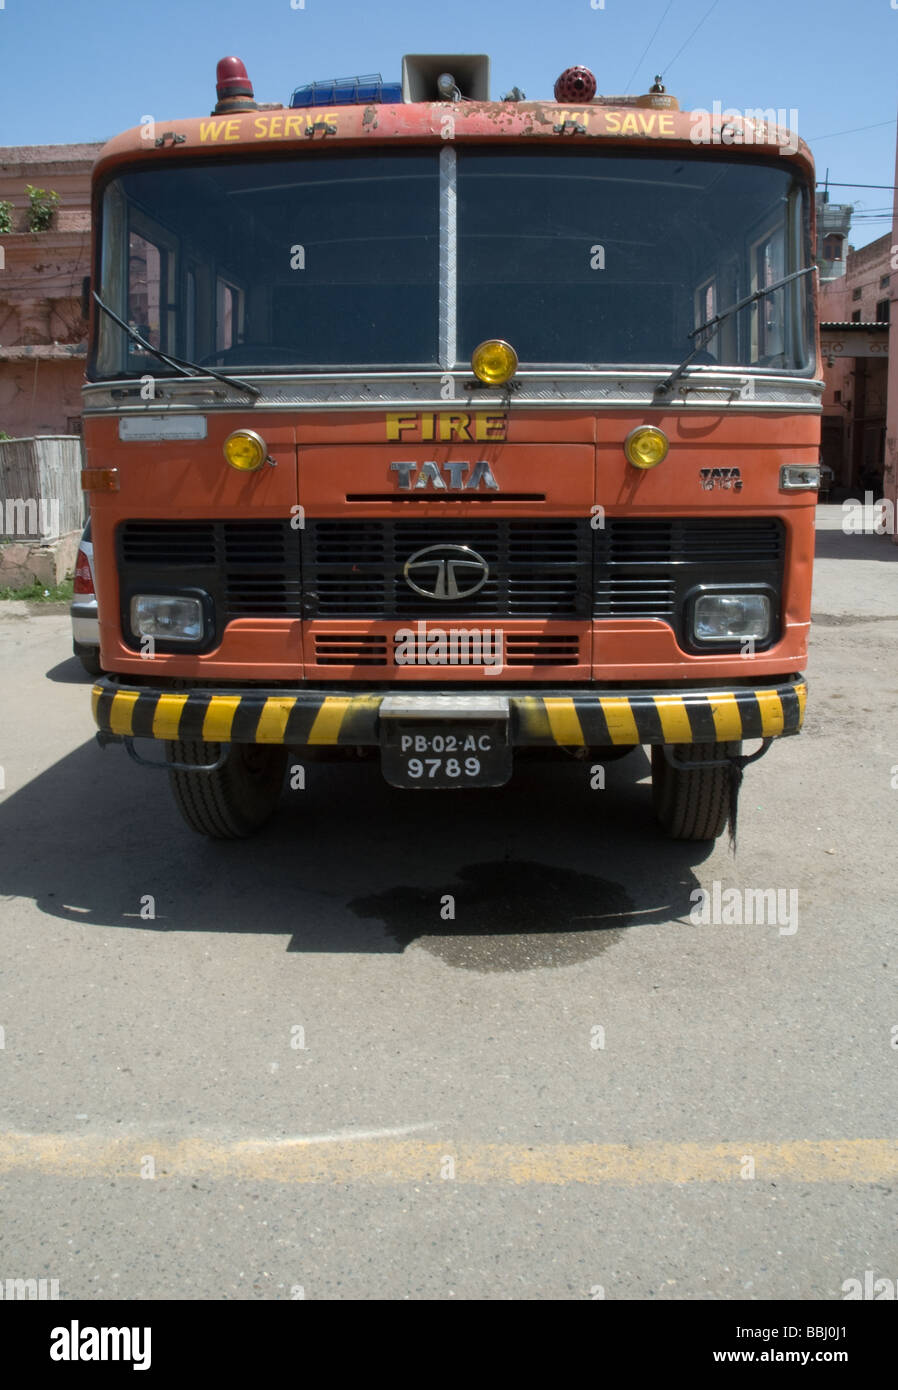 A Fire Engine From India   Stock Image